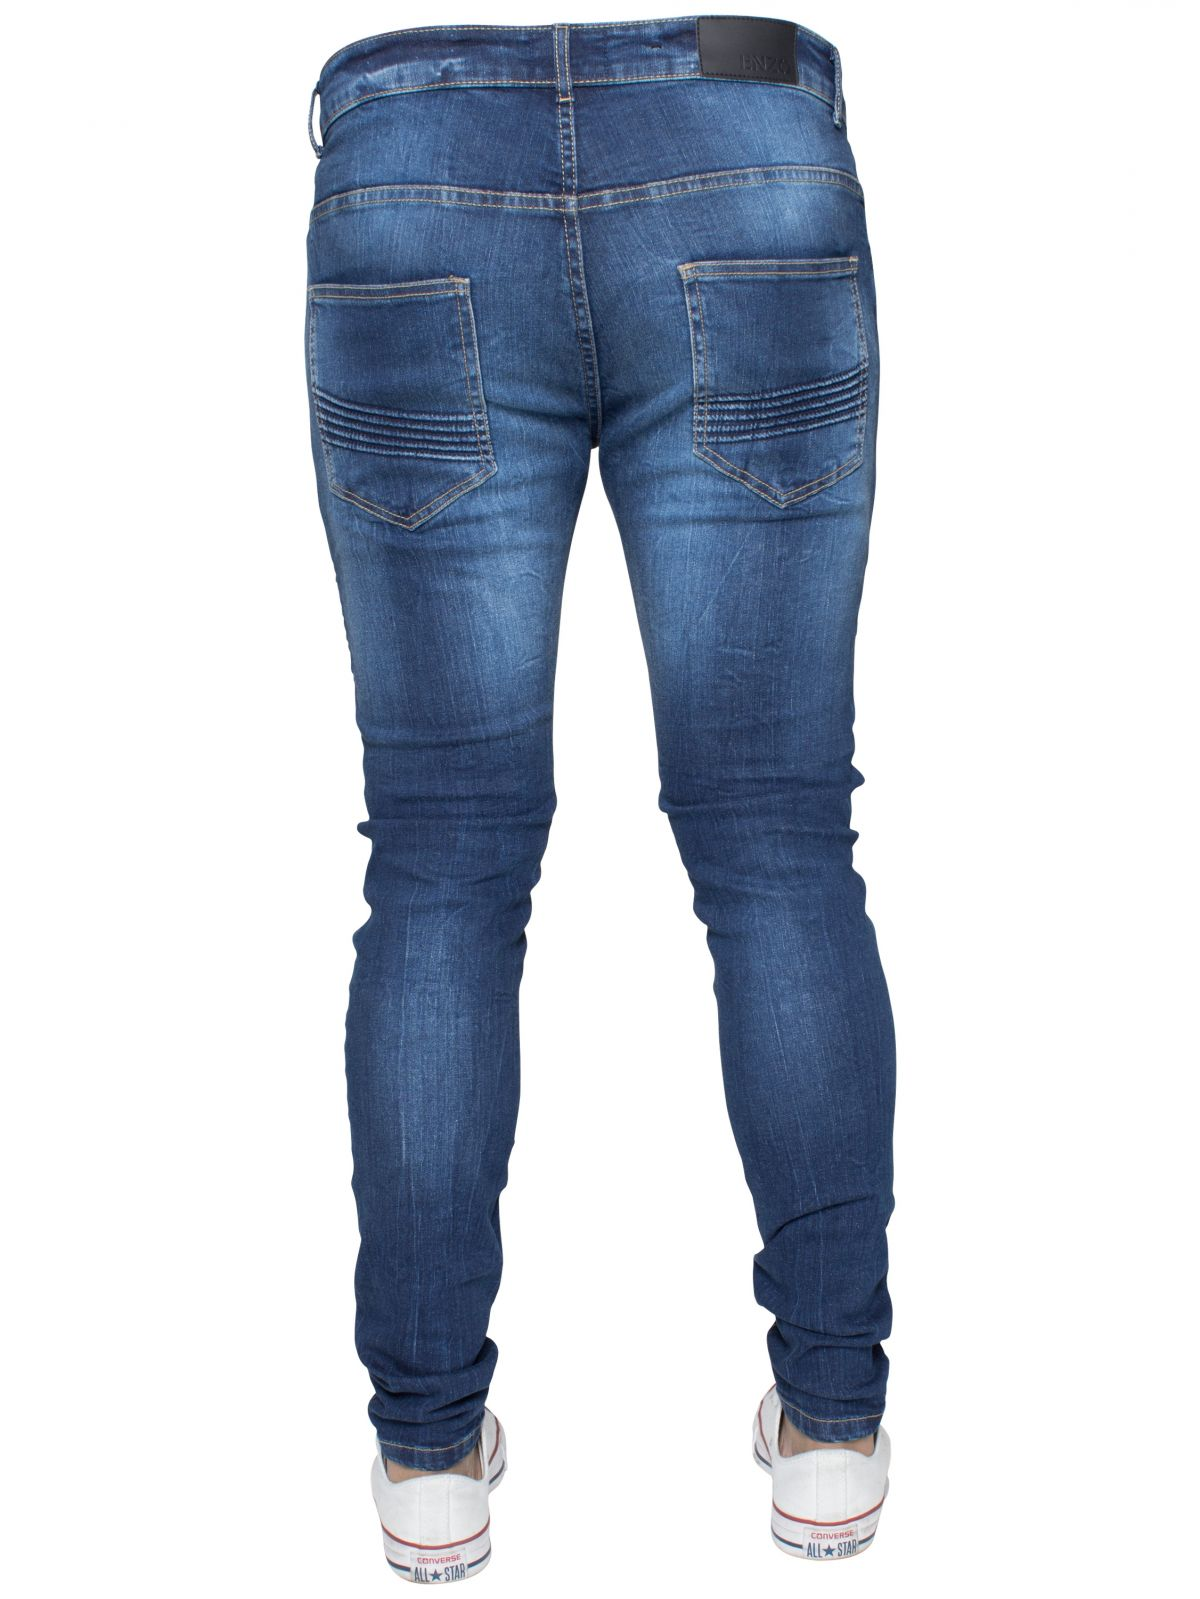 Mens Blue Designer Ripped Biker Jeans Super Skinny Stretch Denim | Enzo Designer Menswear